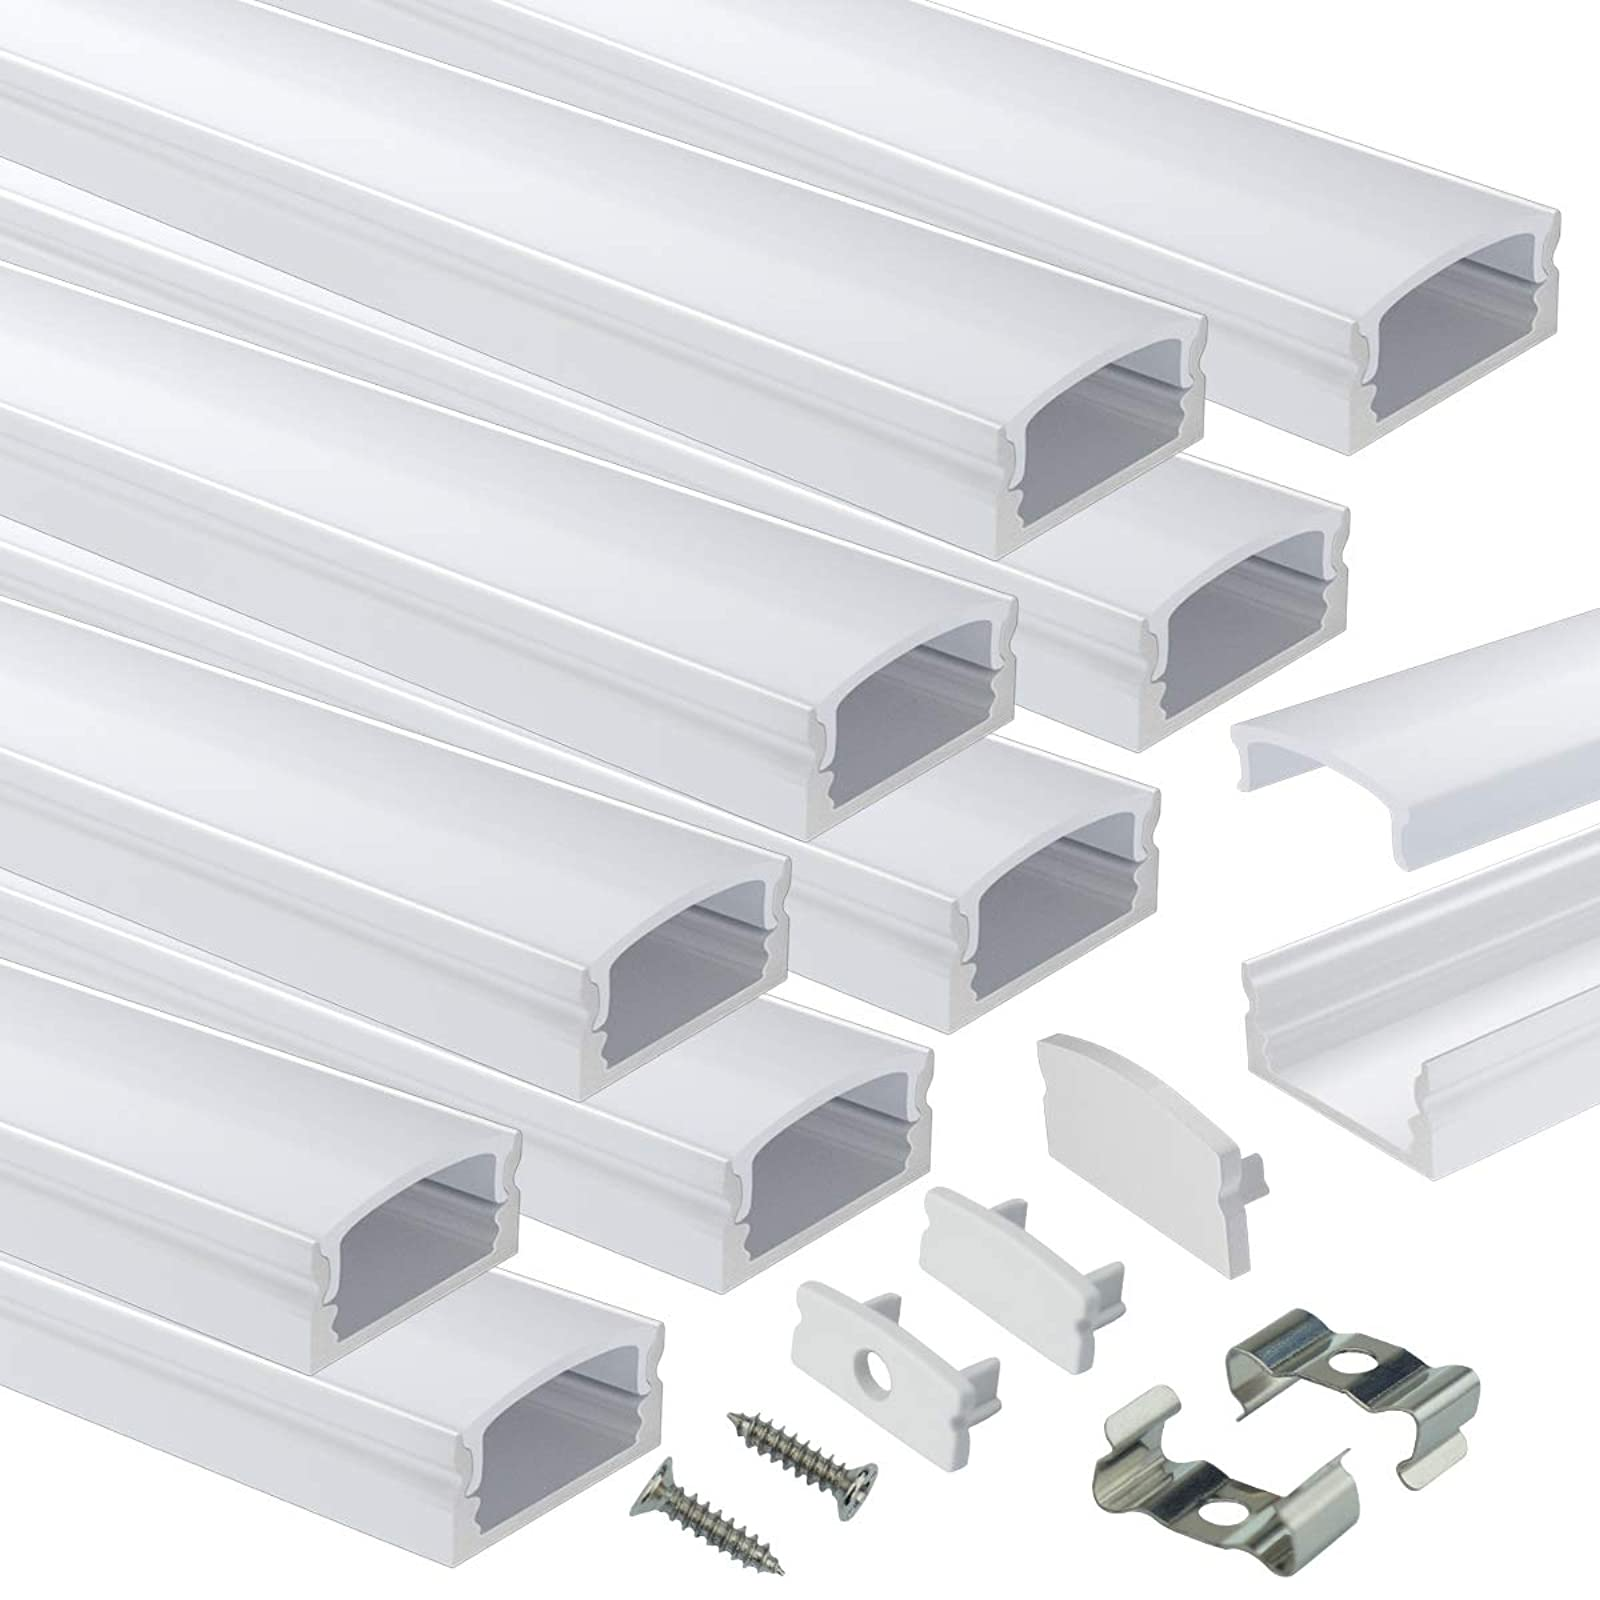 muzata led channel system with milky white cover lens silver aluminum extrusion profile housing diffuser track for strip tape light 10pack 1m 3 3ft u